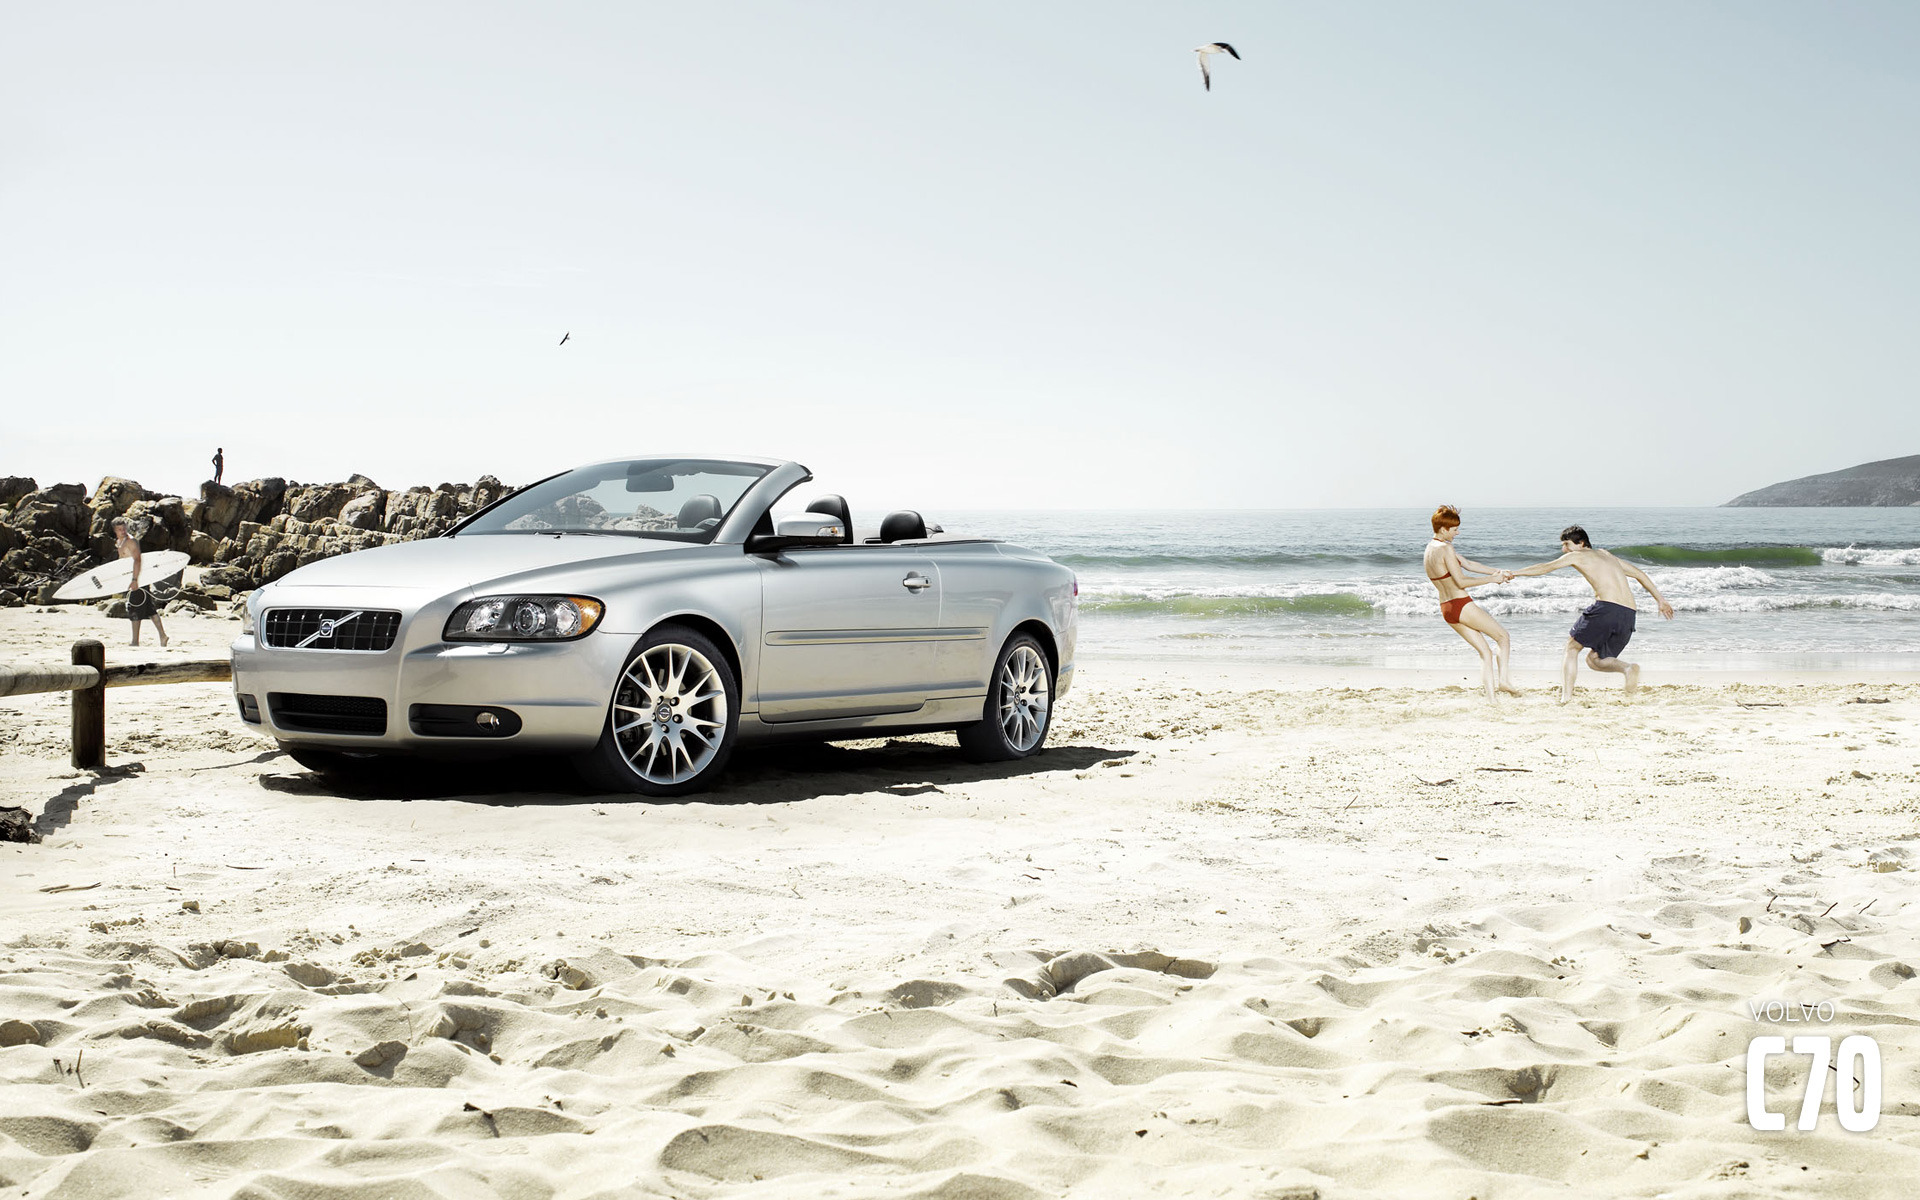 Volvo C70 in the sand